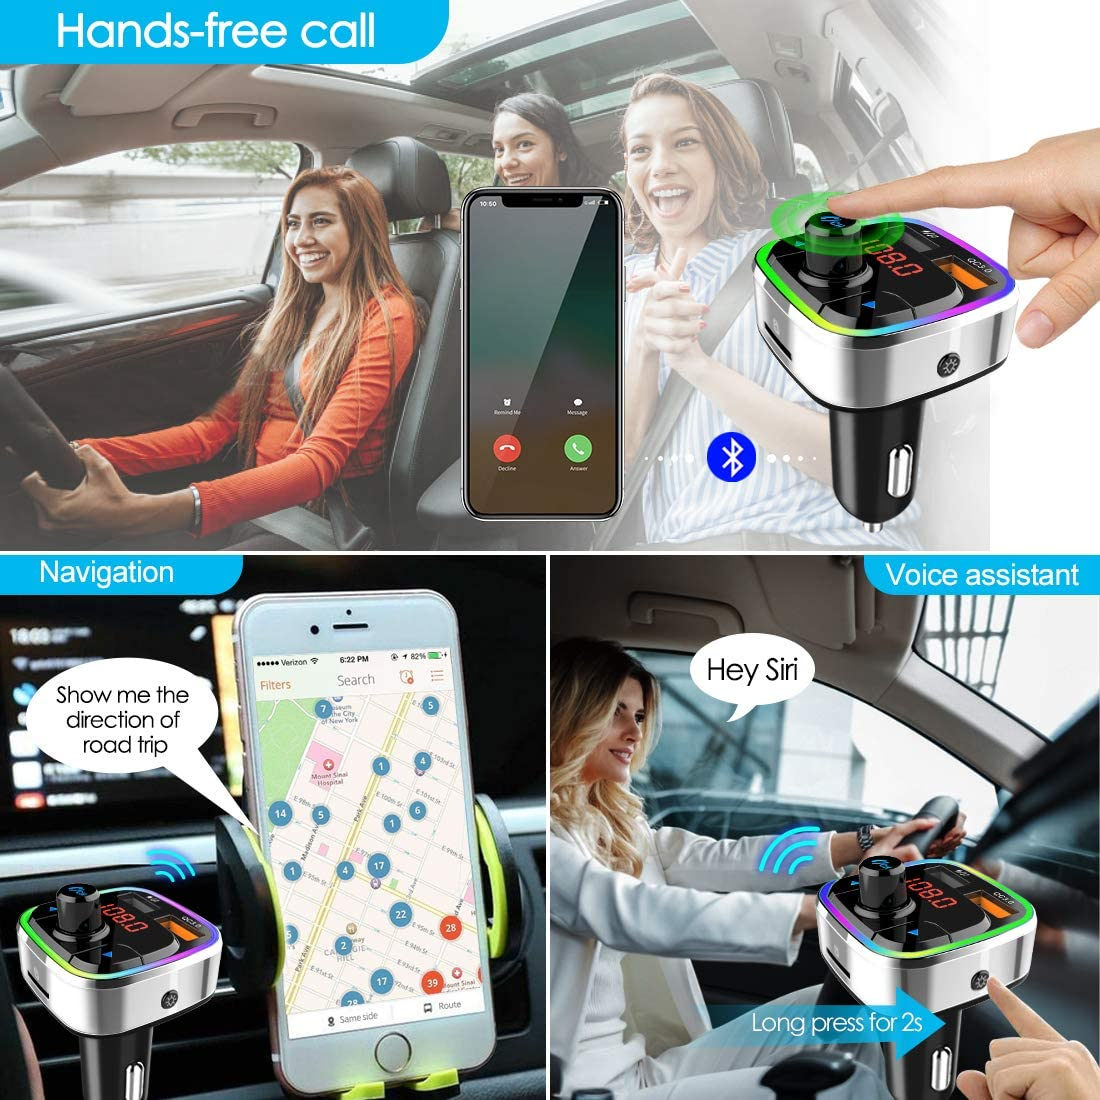 Bluetooth 5.0 Car FM Transmitter,QC3.0 Wireless Bluetooth Car Adapter Mp3 Music Player Car Kit with Hands-Free Calling and 2 USB Charge,LED Backlit,Play TF Card/USB for All Smartphones Audio Players: MP3 Players & Accessories